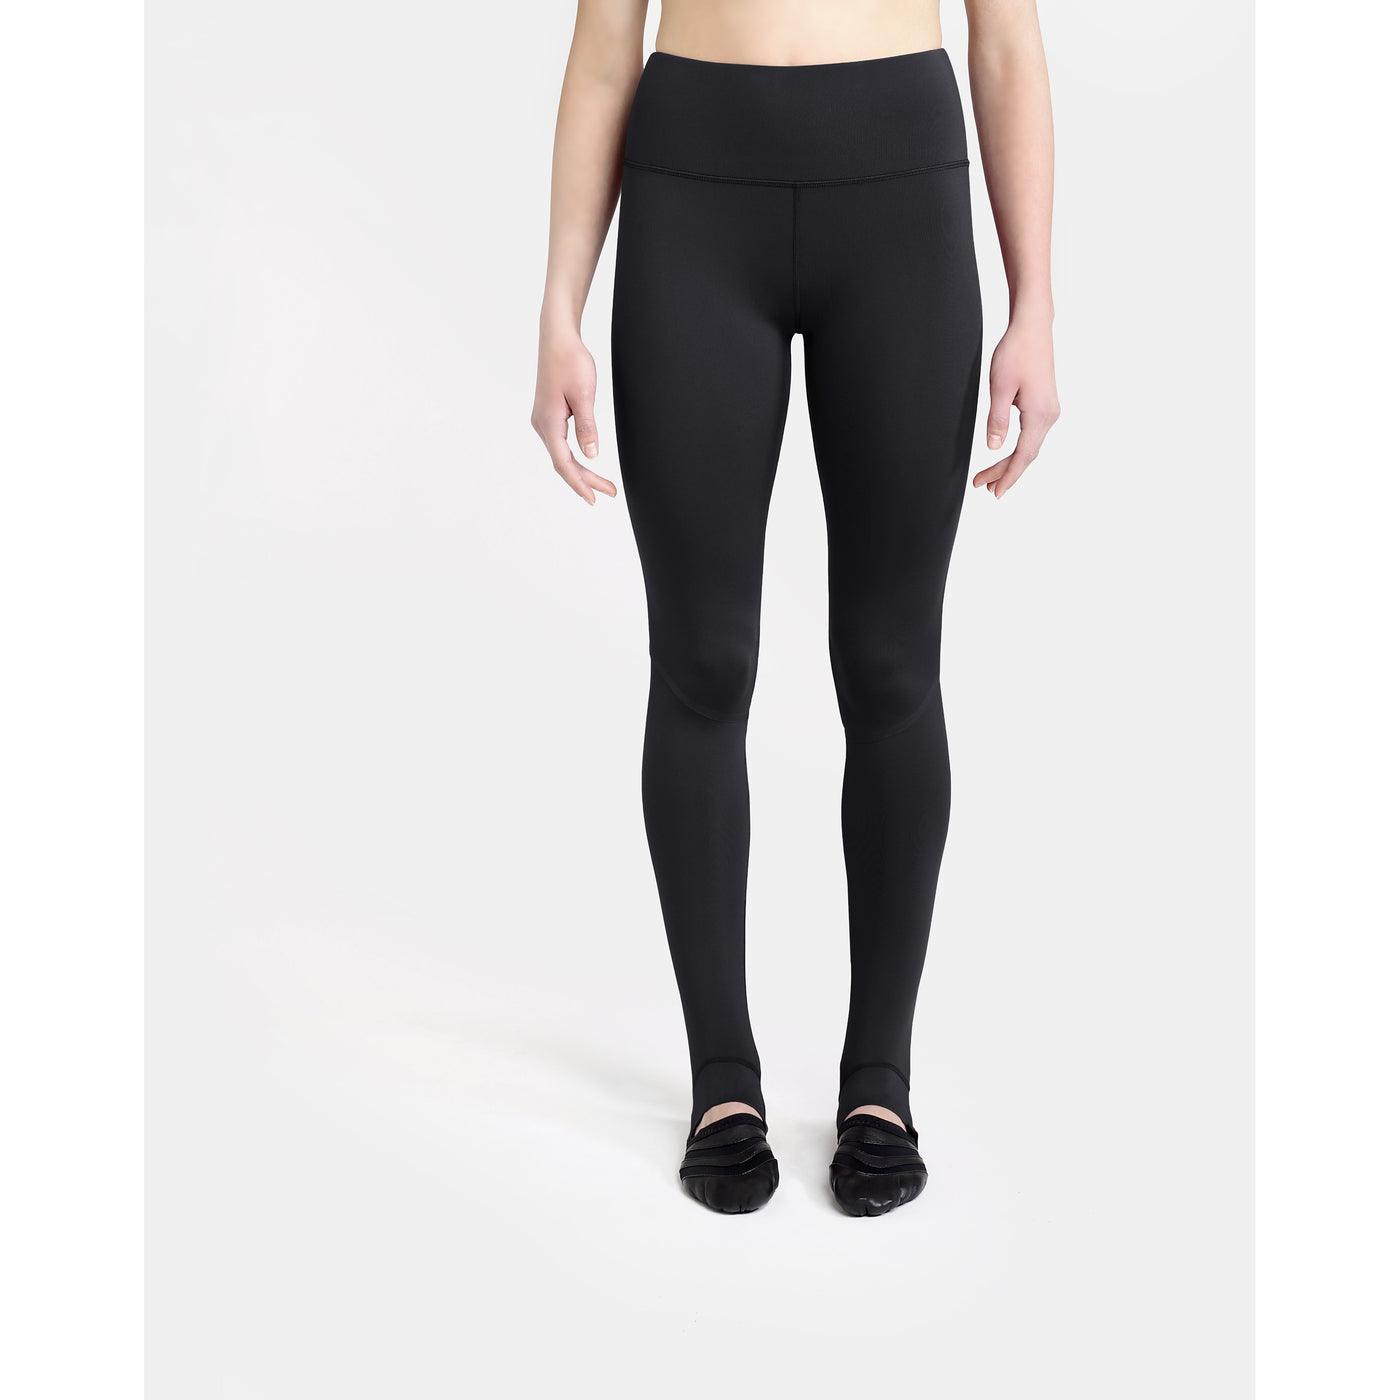 Sync Leggings - Adult